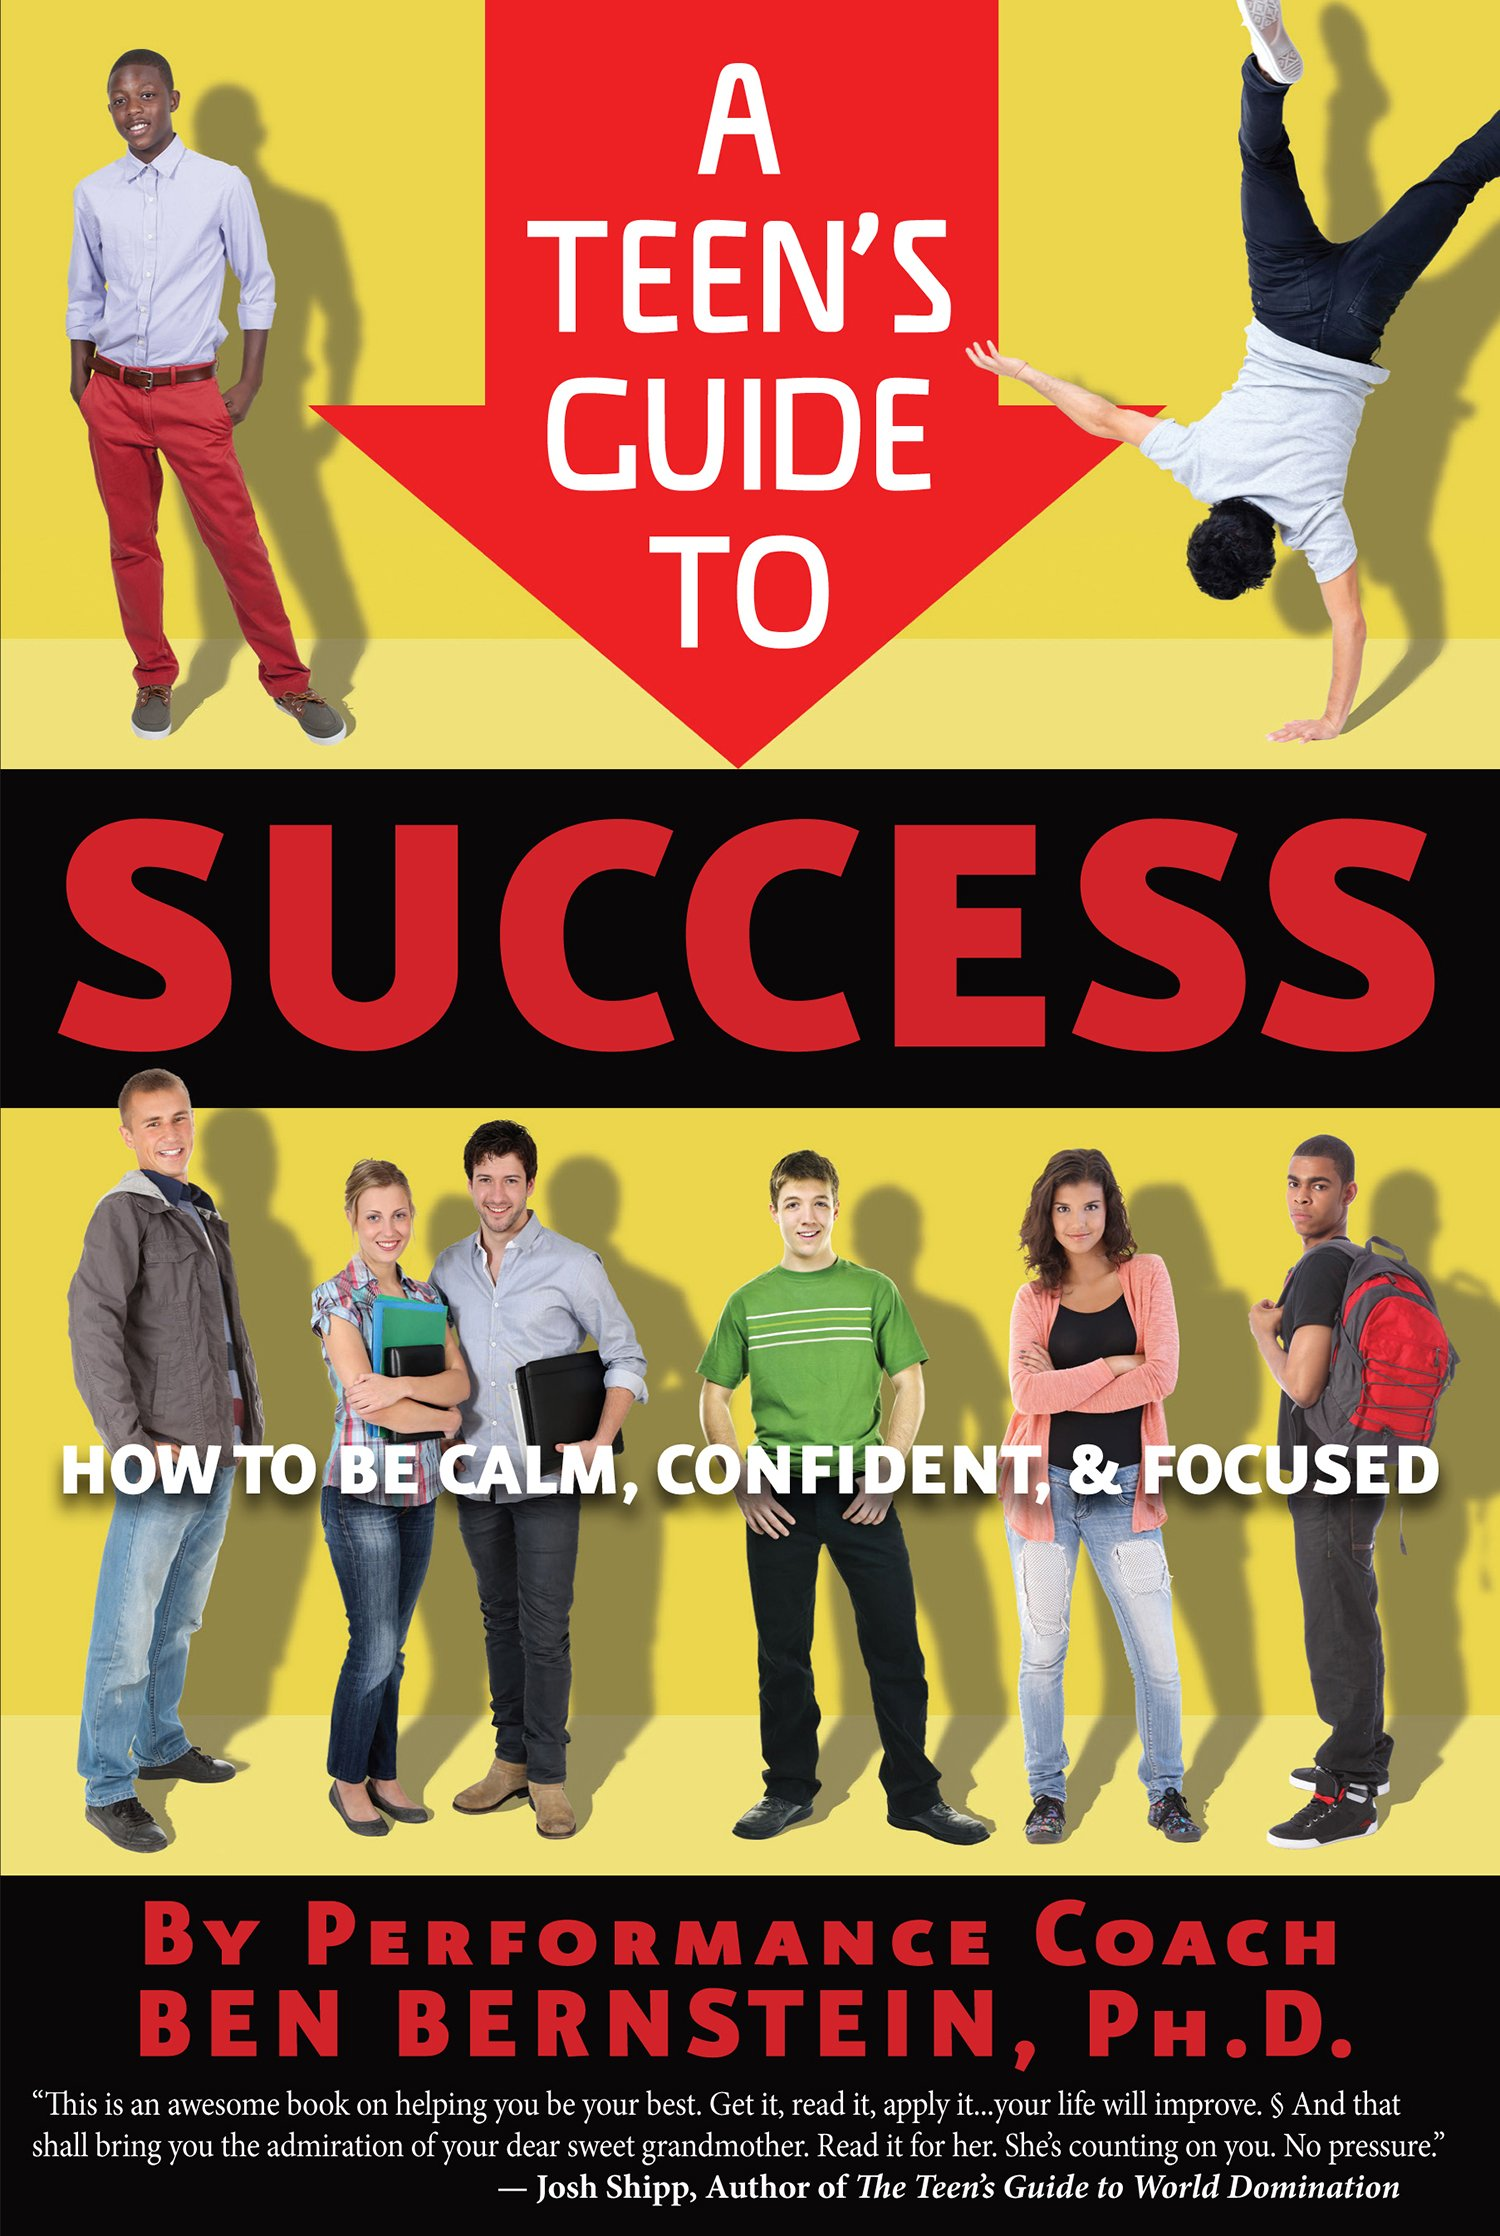 A Teen's Guide to Success: How to Be Calm, Confident, Focused Paperback –  May 25, 2013